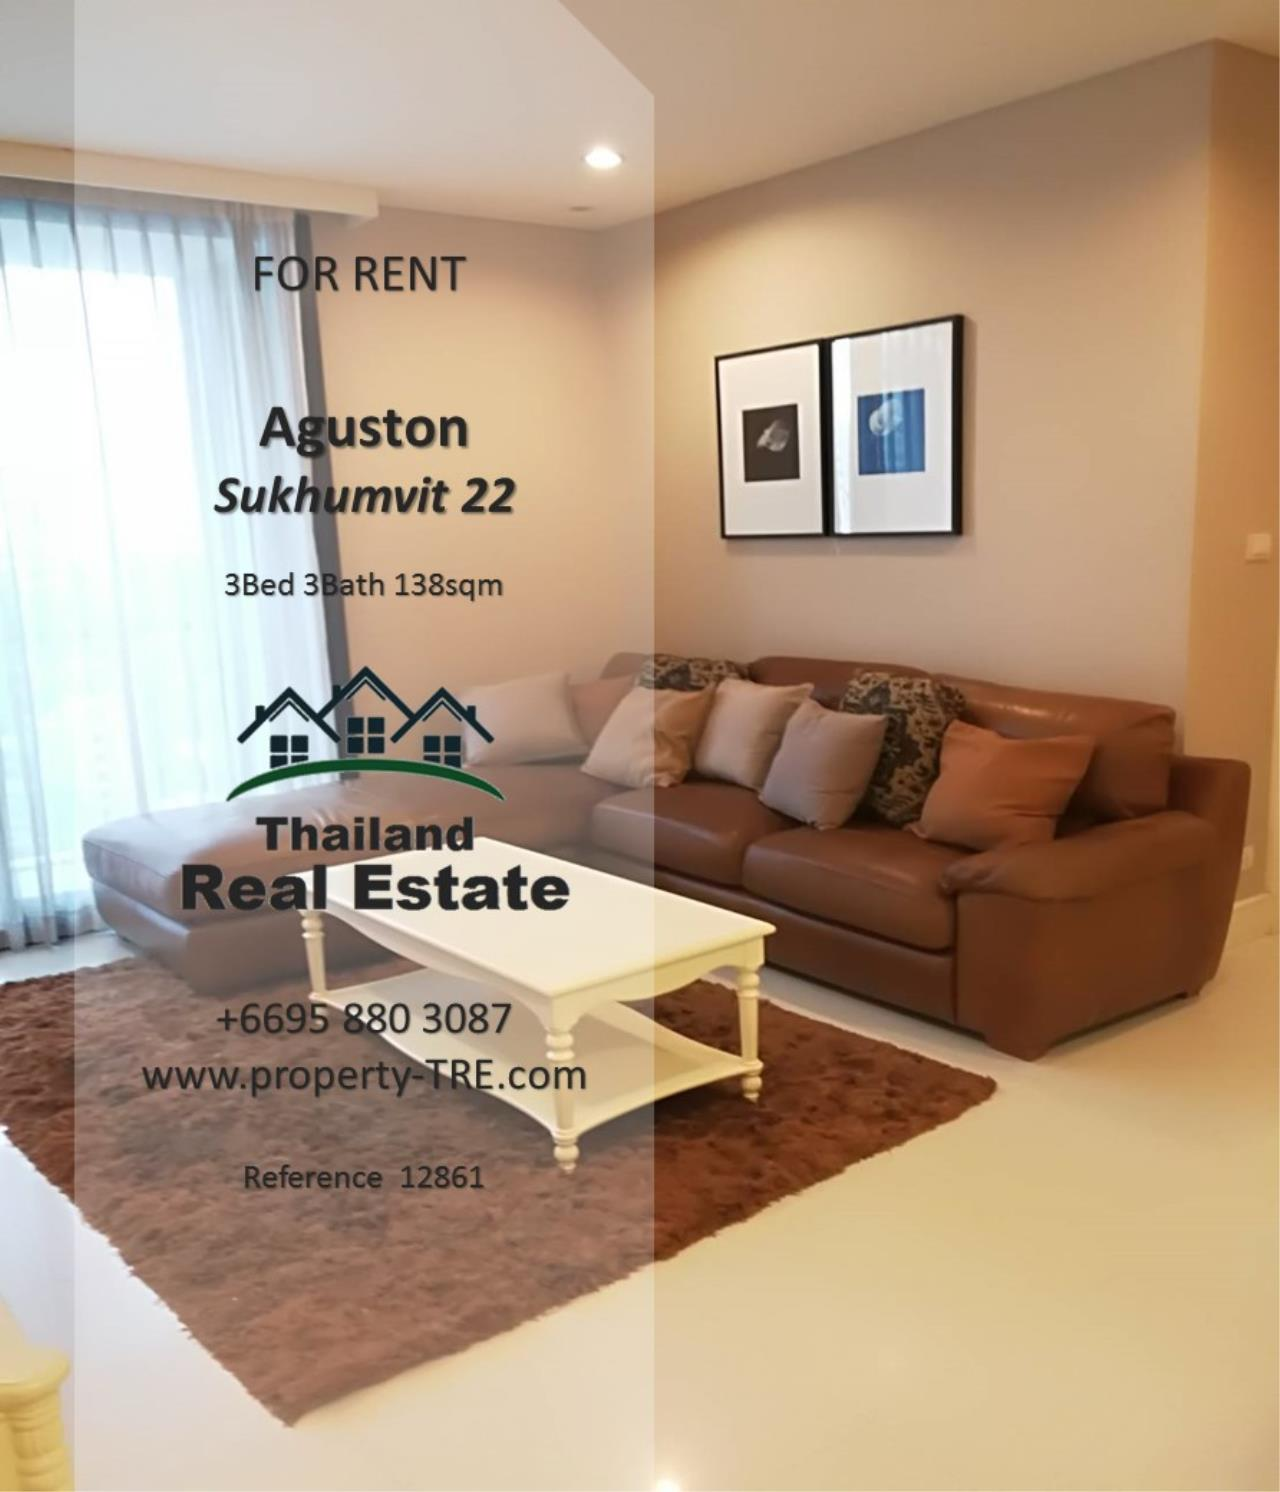 Thailand Real Estate Agency's 3 Bedroom Condo at Aguston Sukhumvit 22 near BTS Phrom Phong(12681) 15